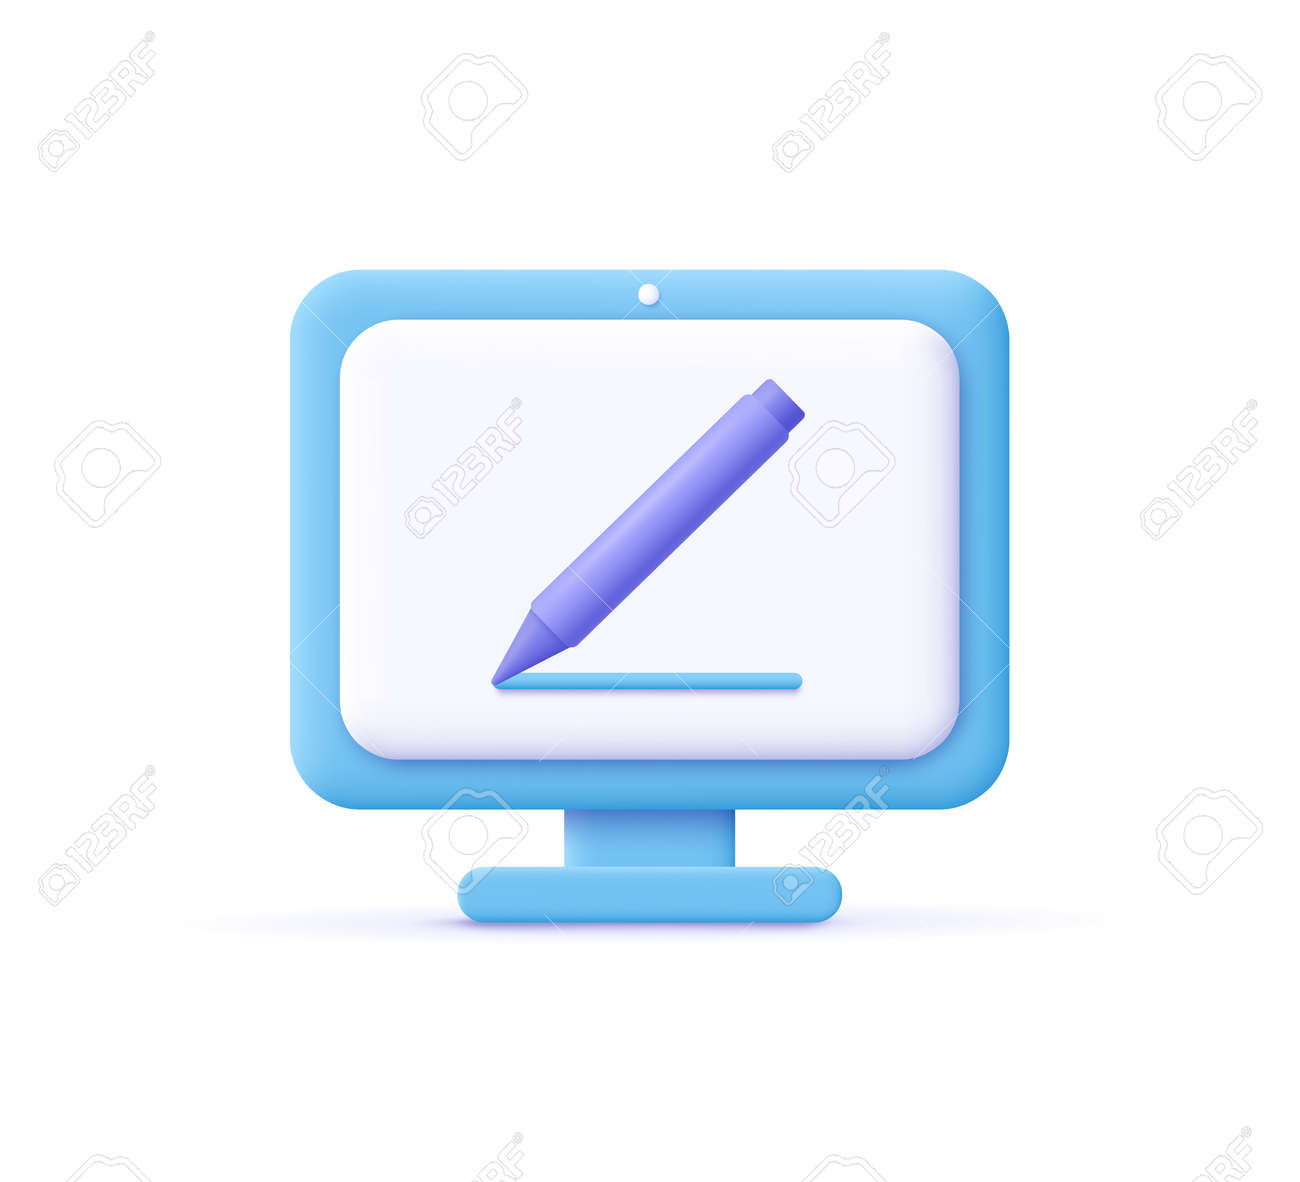 Copywriting, writing icon. Computer and pencil. Creative writing and storytelling, education concept. Writing education concept. 3d vector illustration. - 171225037